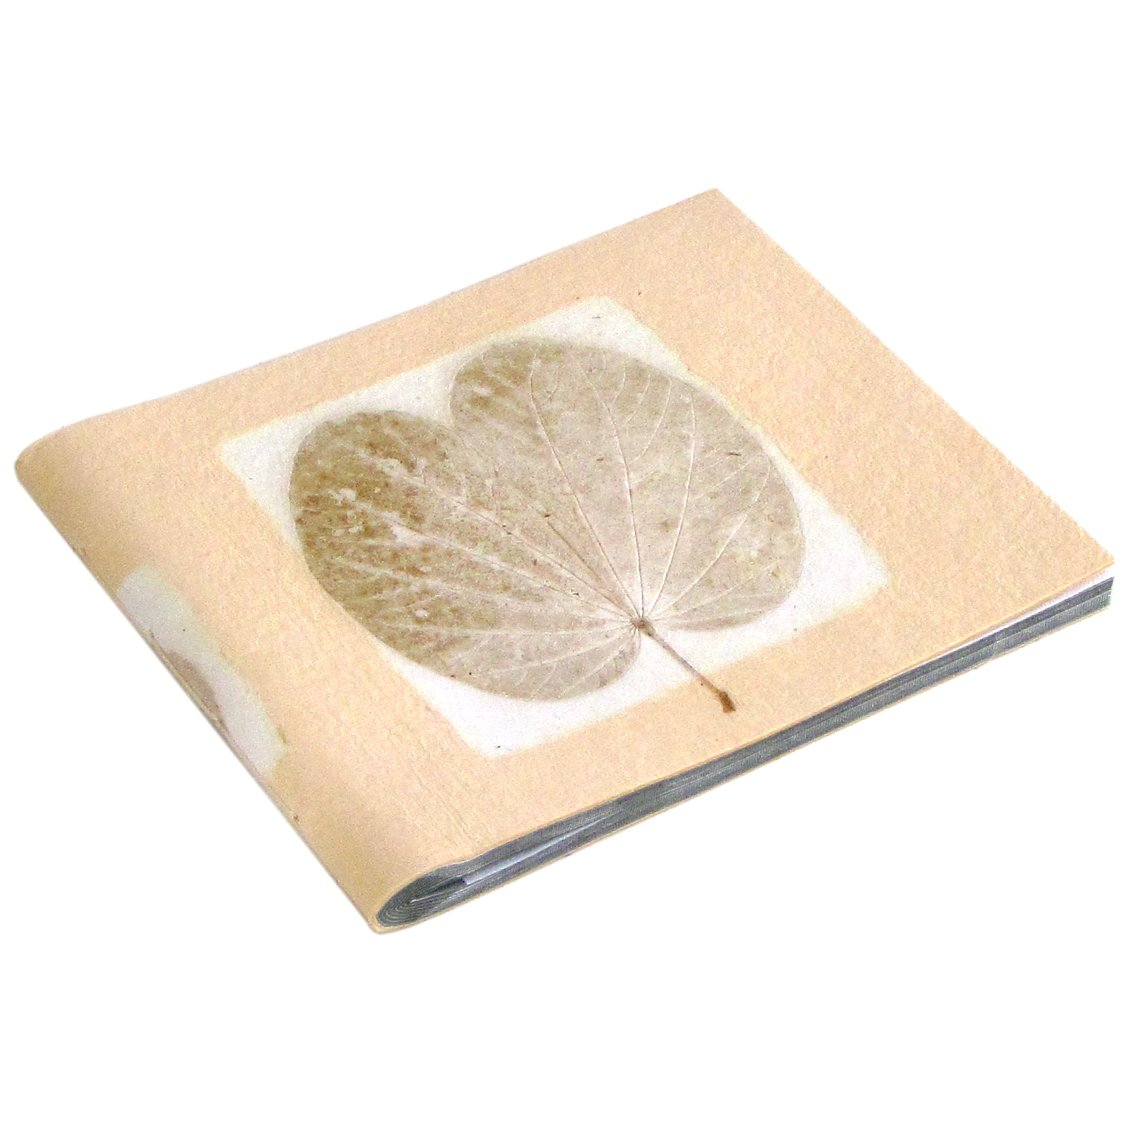 Wedding album book 5x7/6x8 photos 16pp pale sand handmade tree free natural leaf paper